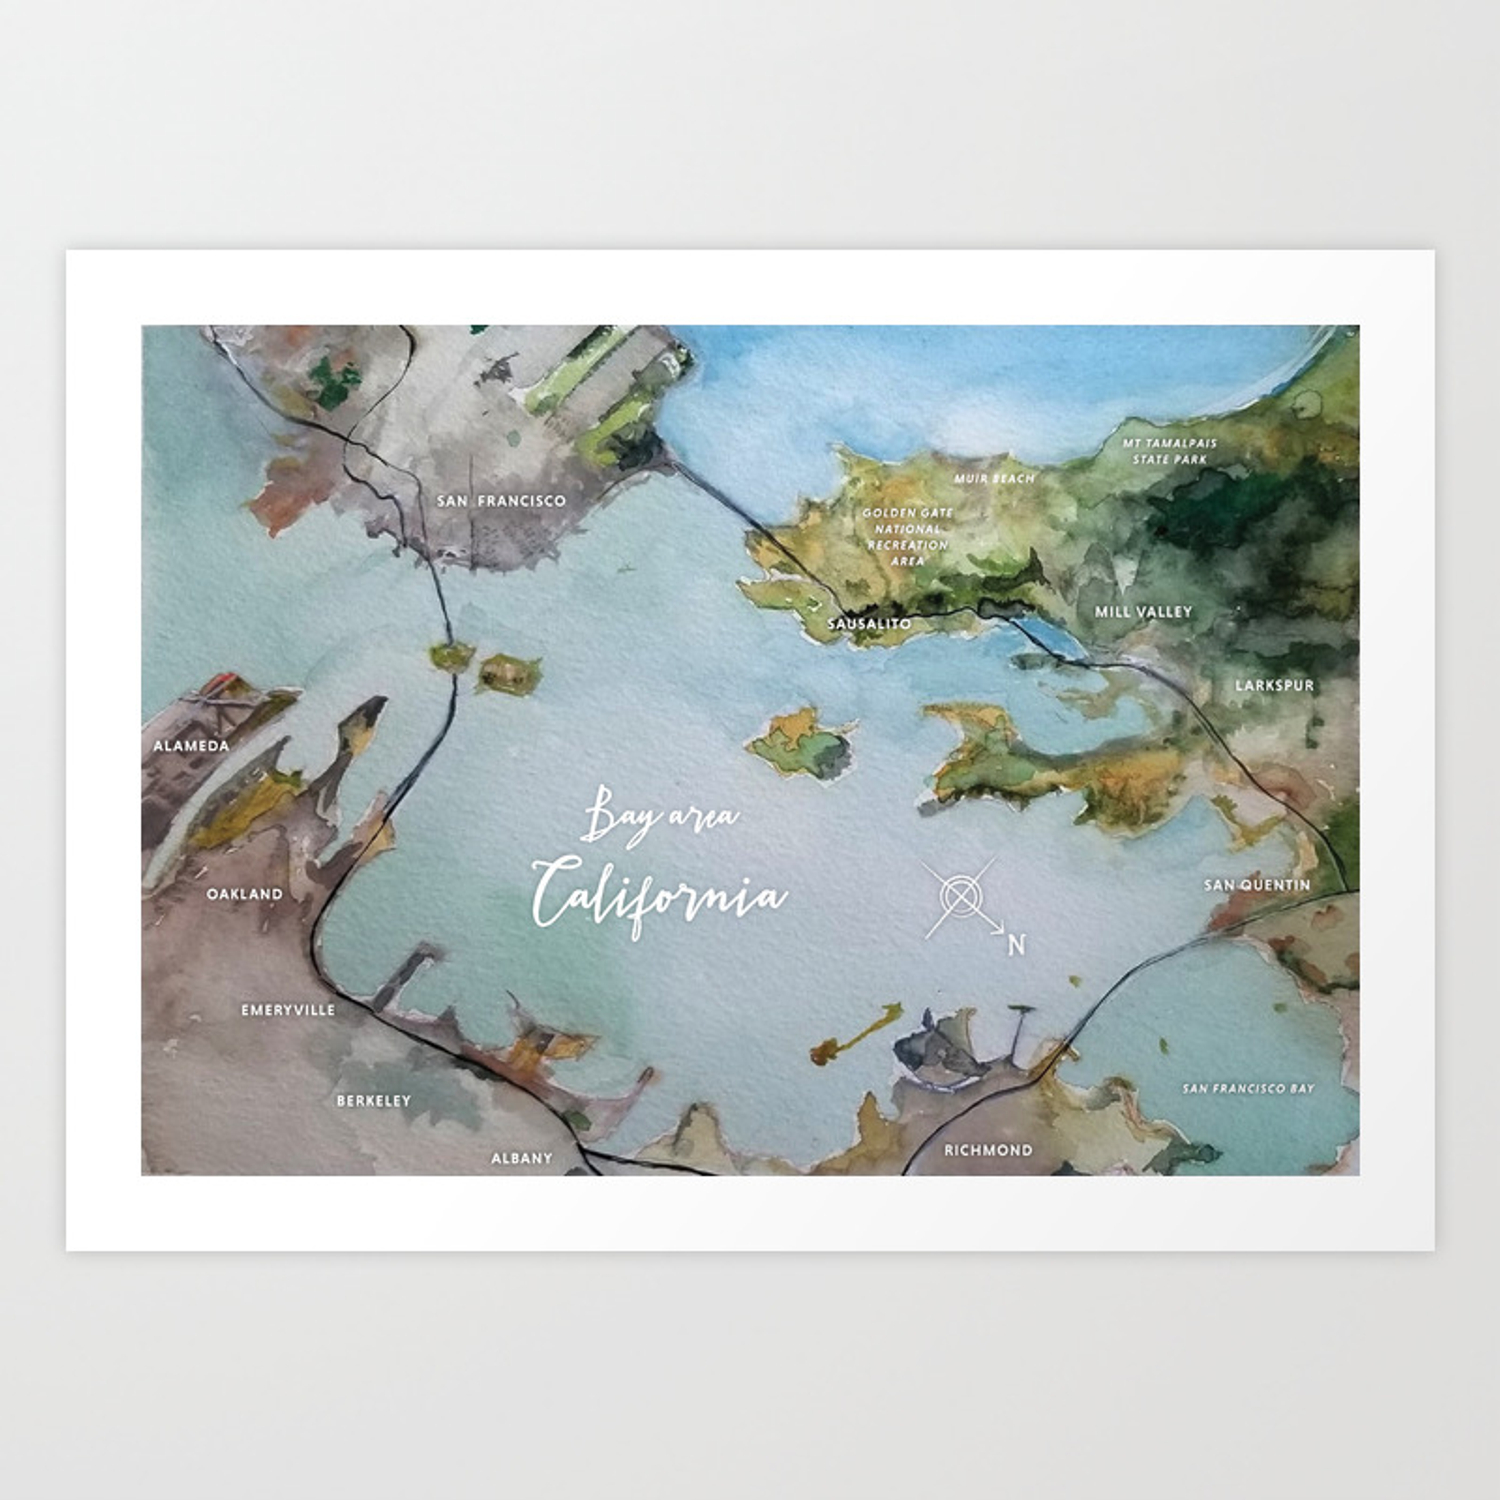 Bay Area Ca Watercolor Map Art Print By Sherigruver Society6 San francisco bay area map photo puzzle (500 pieces) (15193012) framed, poster, canvas prints, puzzles, photo gifts and wall art. bay area ca watercolor map art print by sherigruver